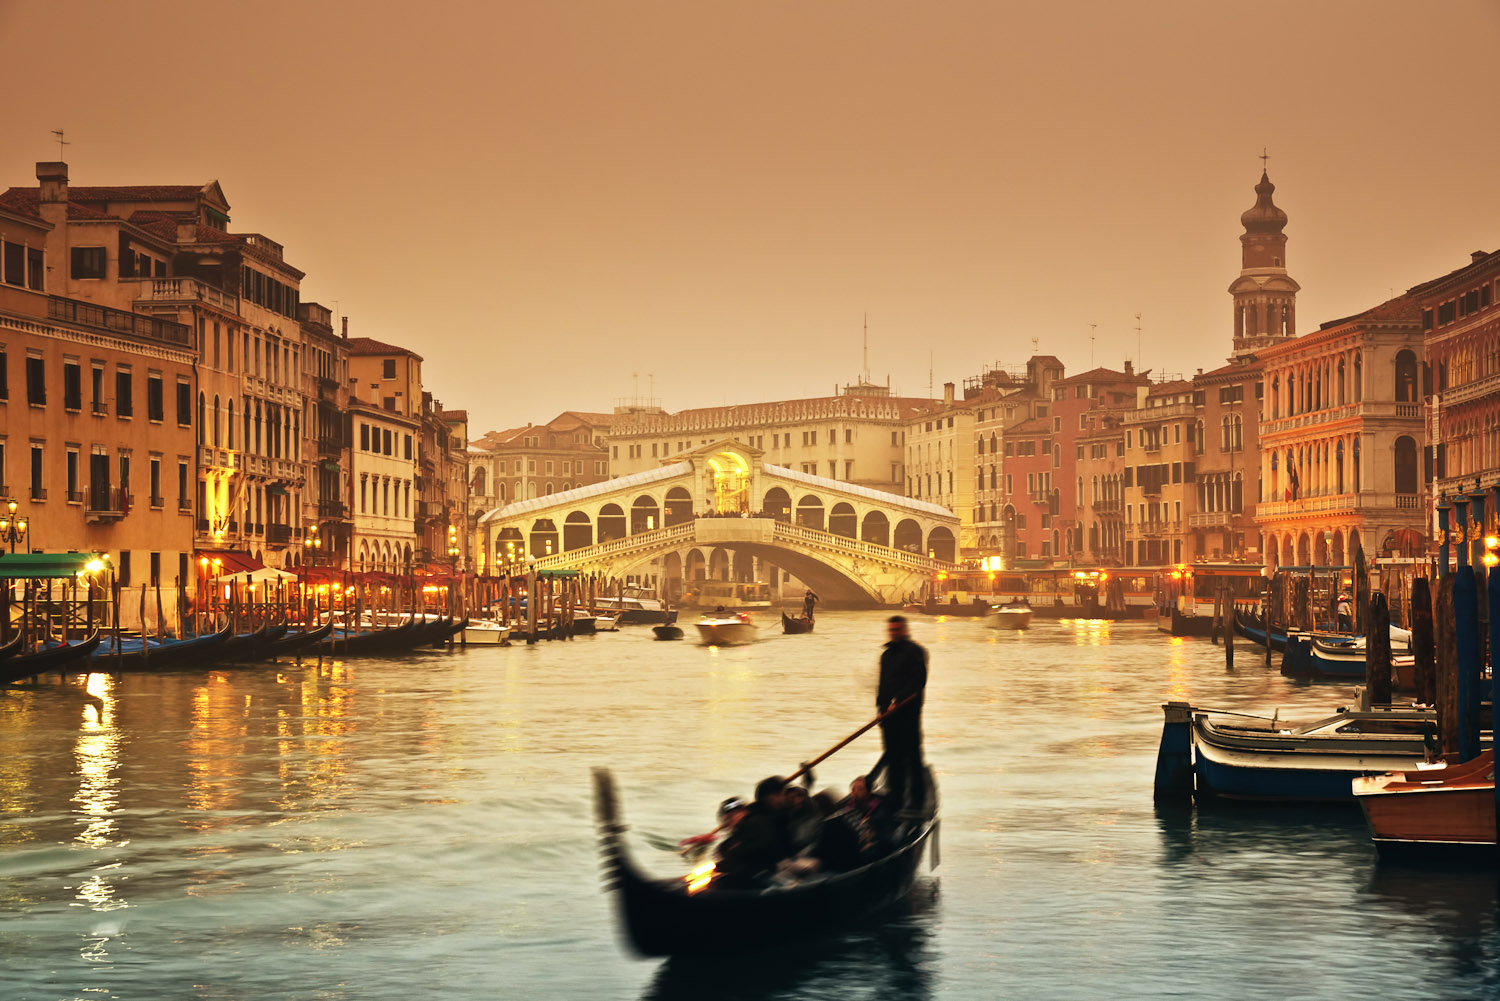 Sunset over the Grand Canal and the famous Rialto Bridge.